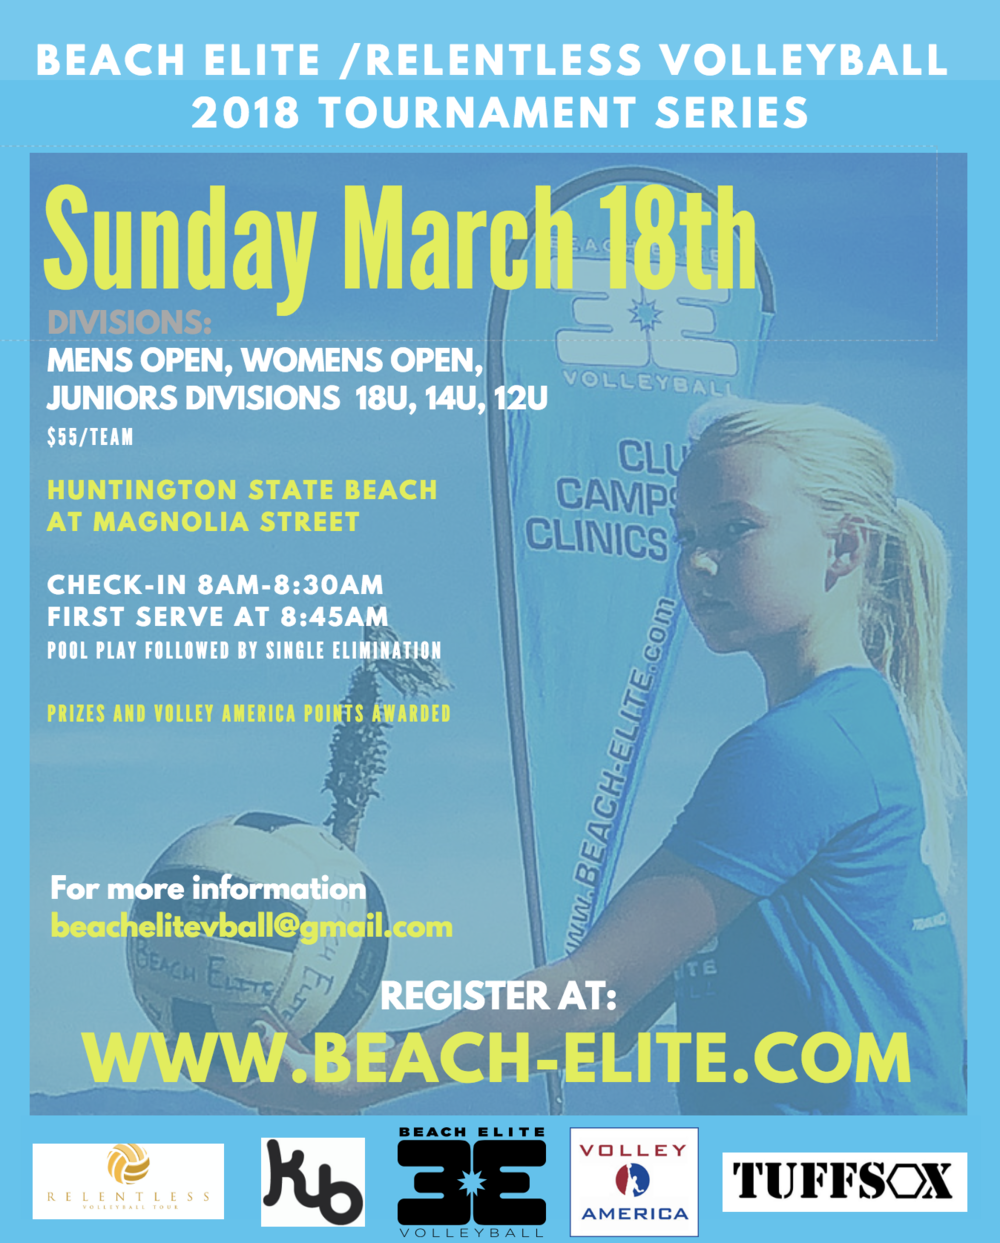 beach elite tournament series